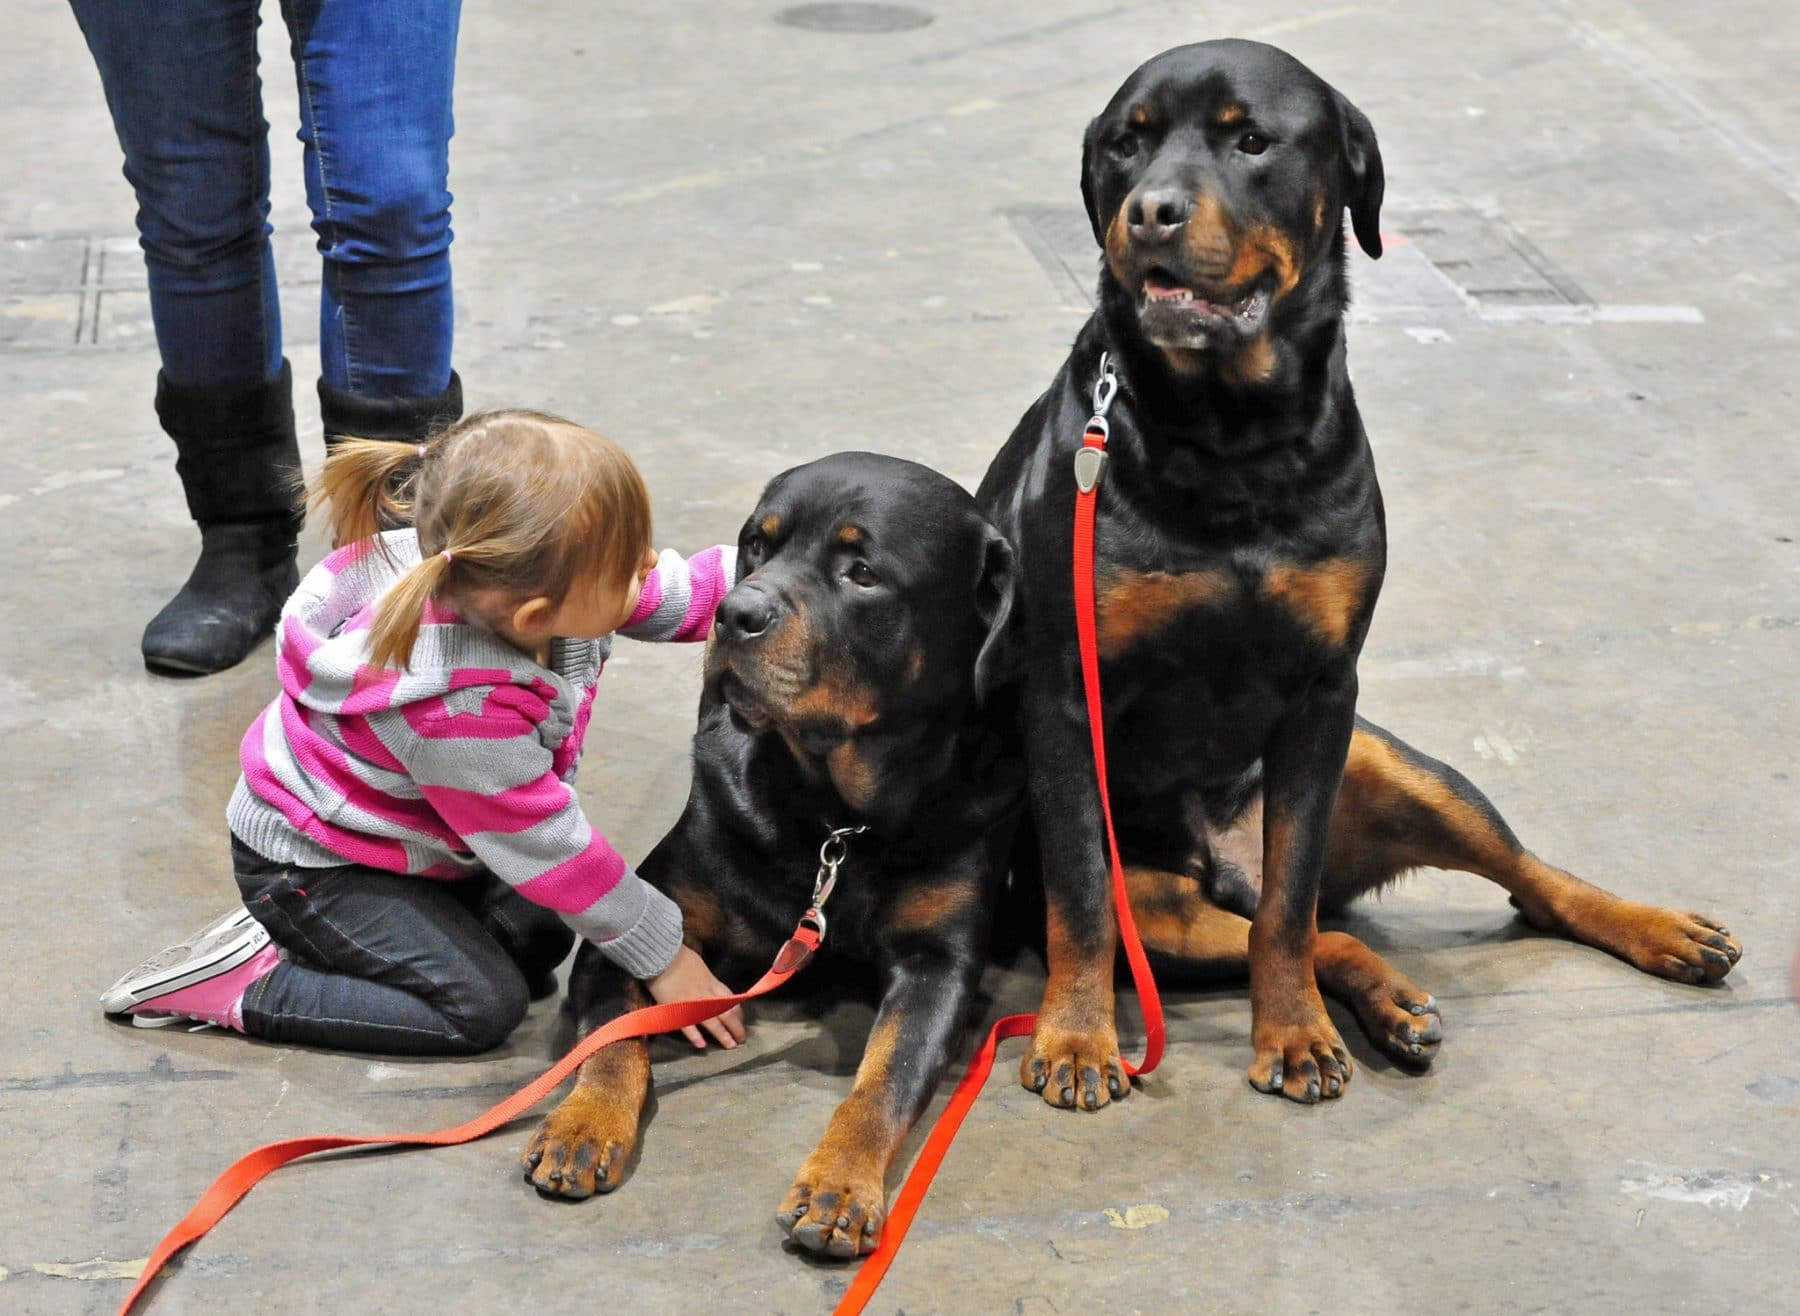 A young girl petting two calm, leashed Rottweilers.